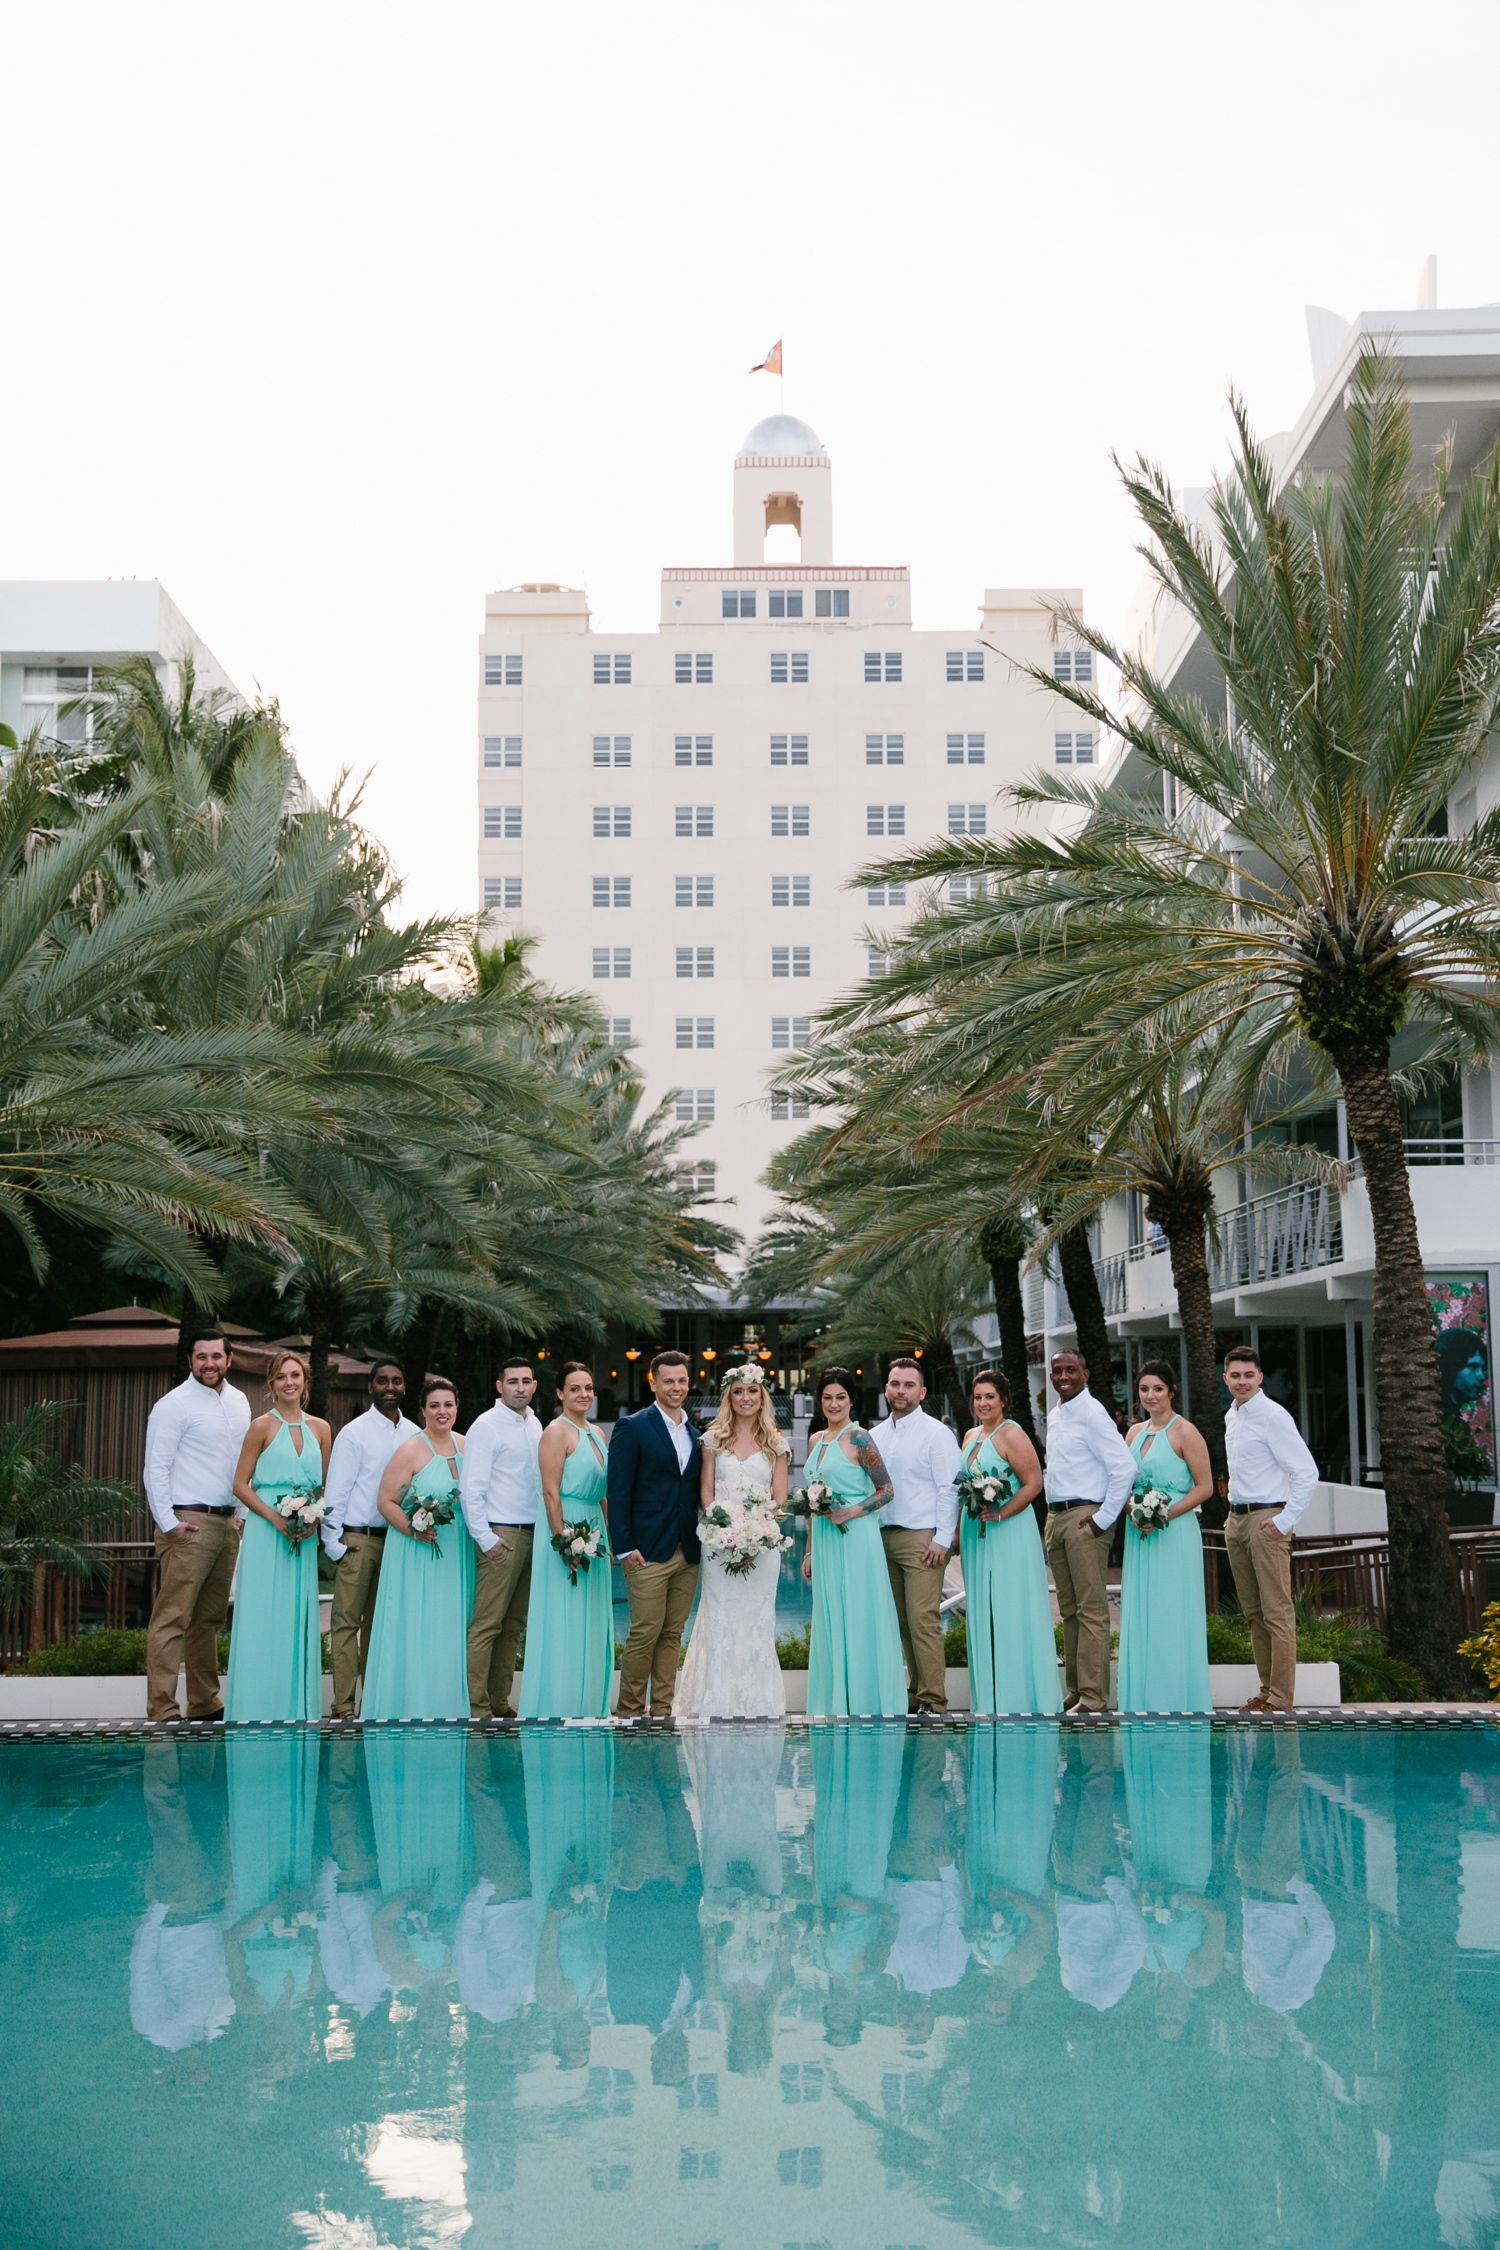 Winter beach wedding at the national hotel winter beach turquoise